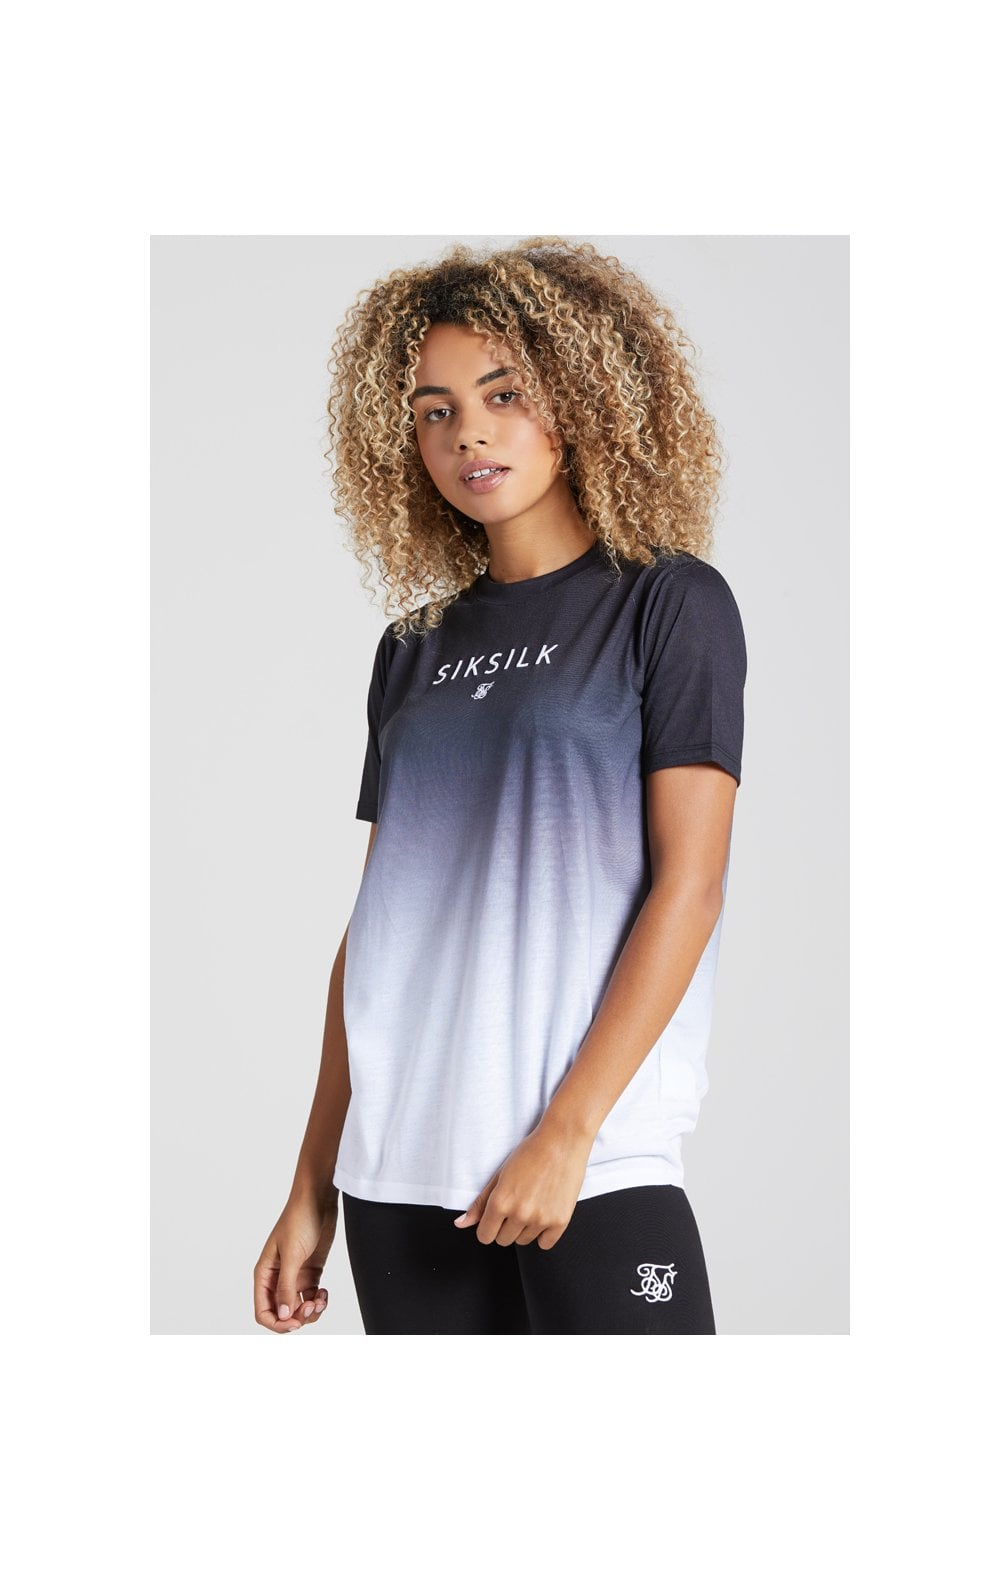 Load image into Gallery viewer, SikSilk Fade Logo Boyfriend Tee - Black & White (4)